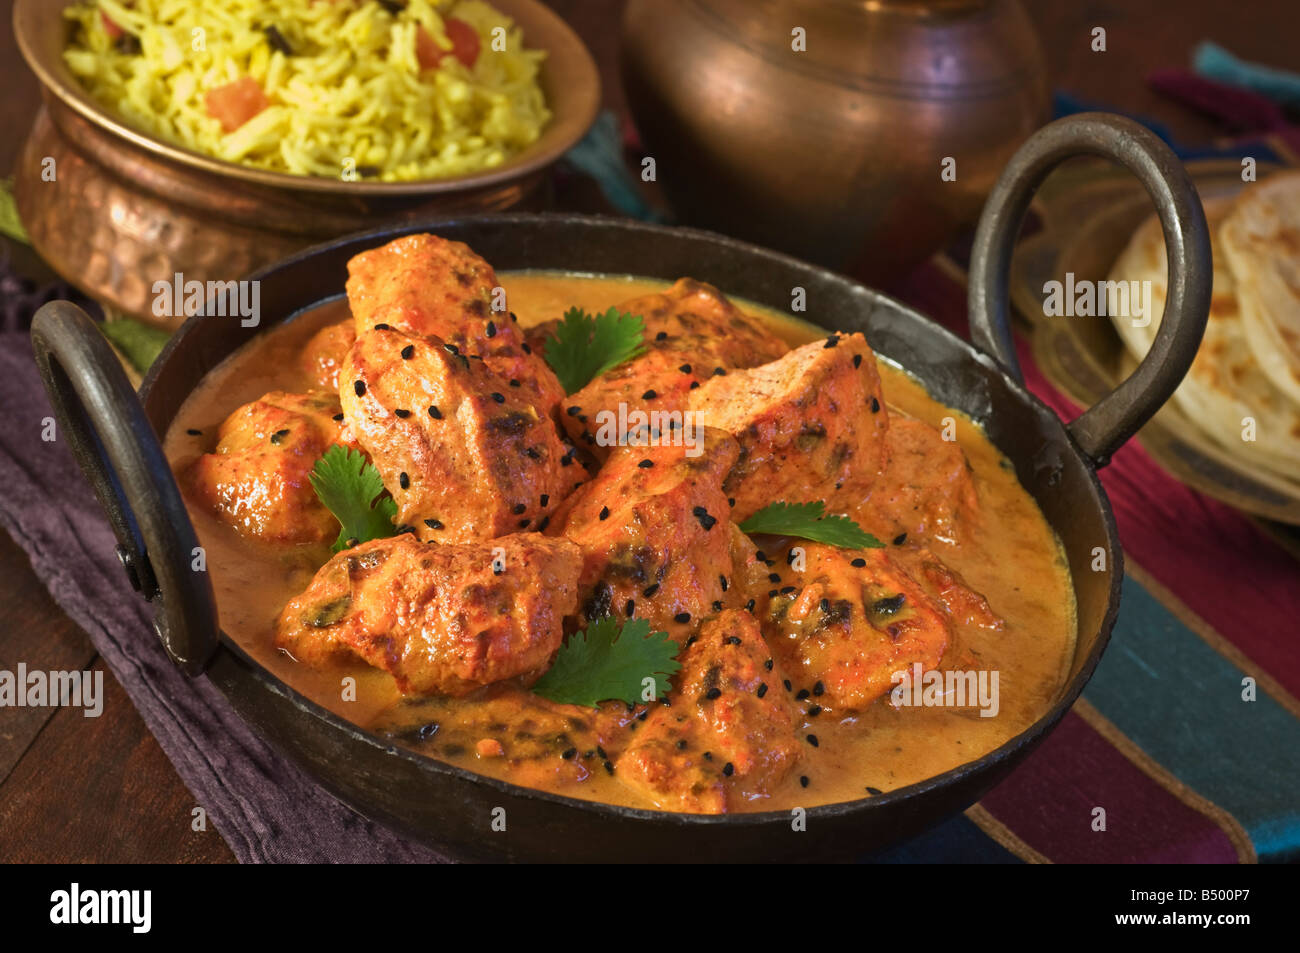 Balti chicken tikka masala curry indian food stock photo 20284271 balti chicken tikka masala curry indian food forumfinder Images